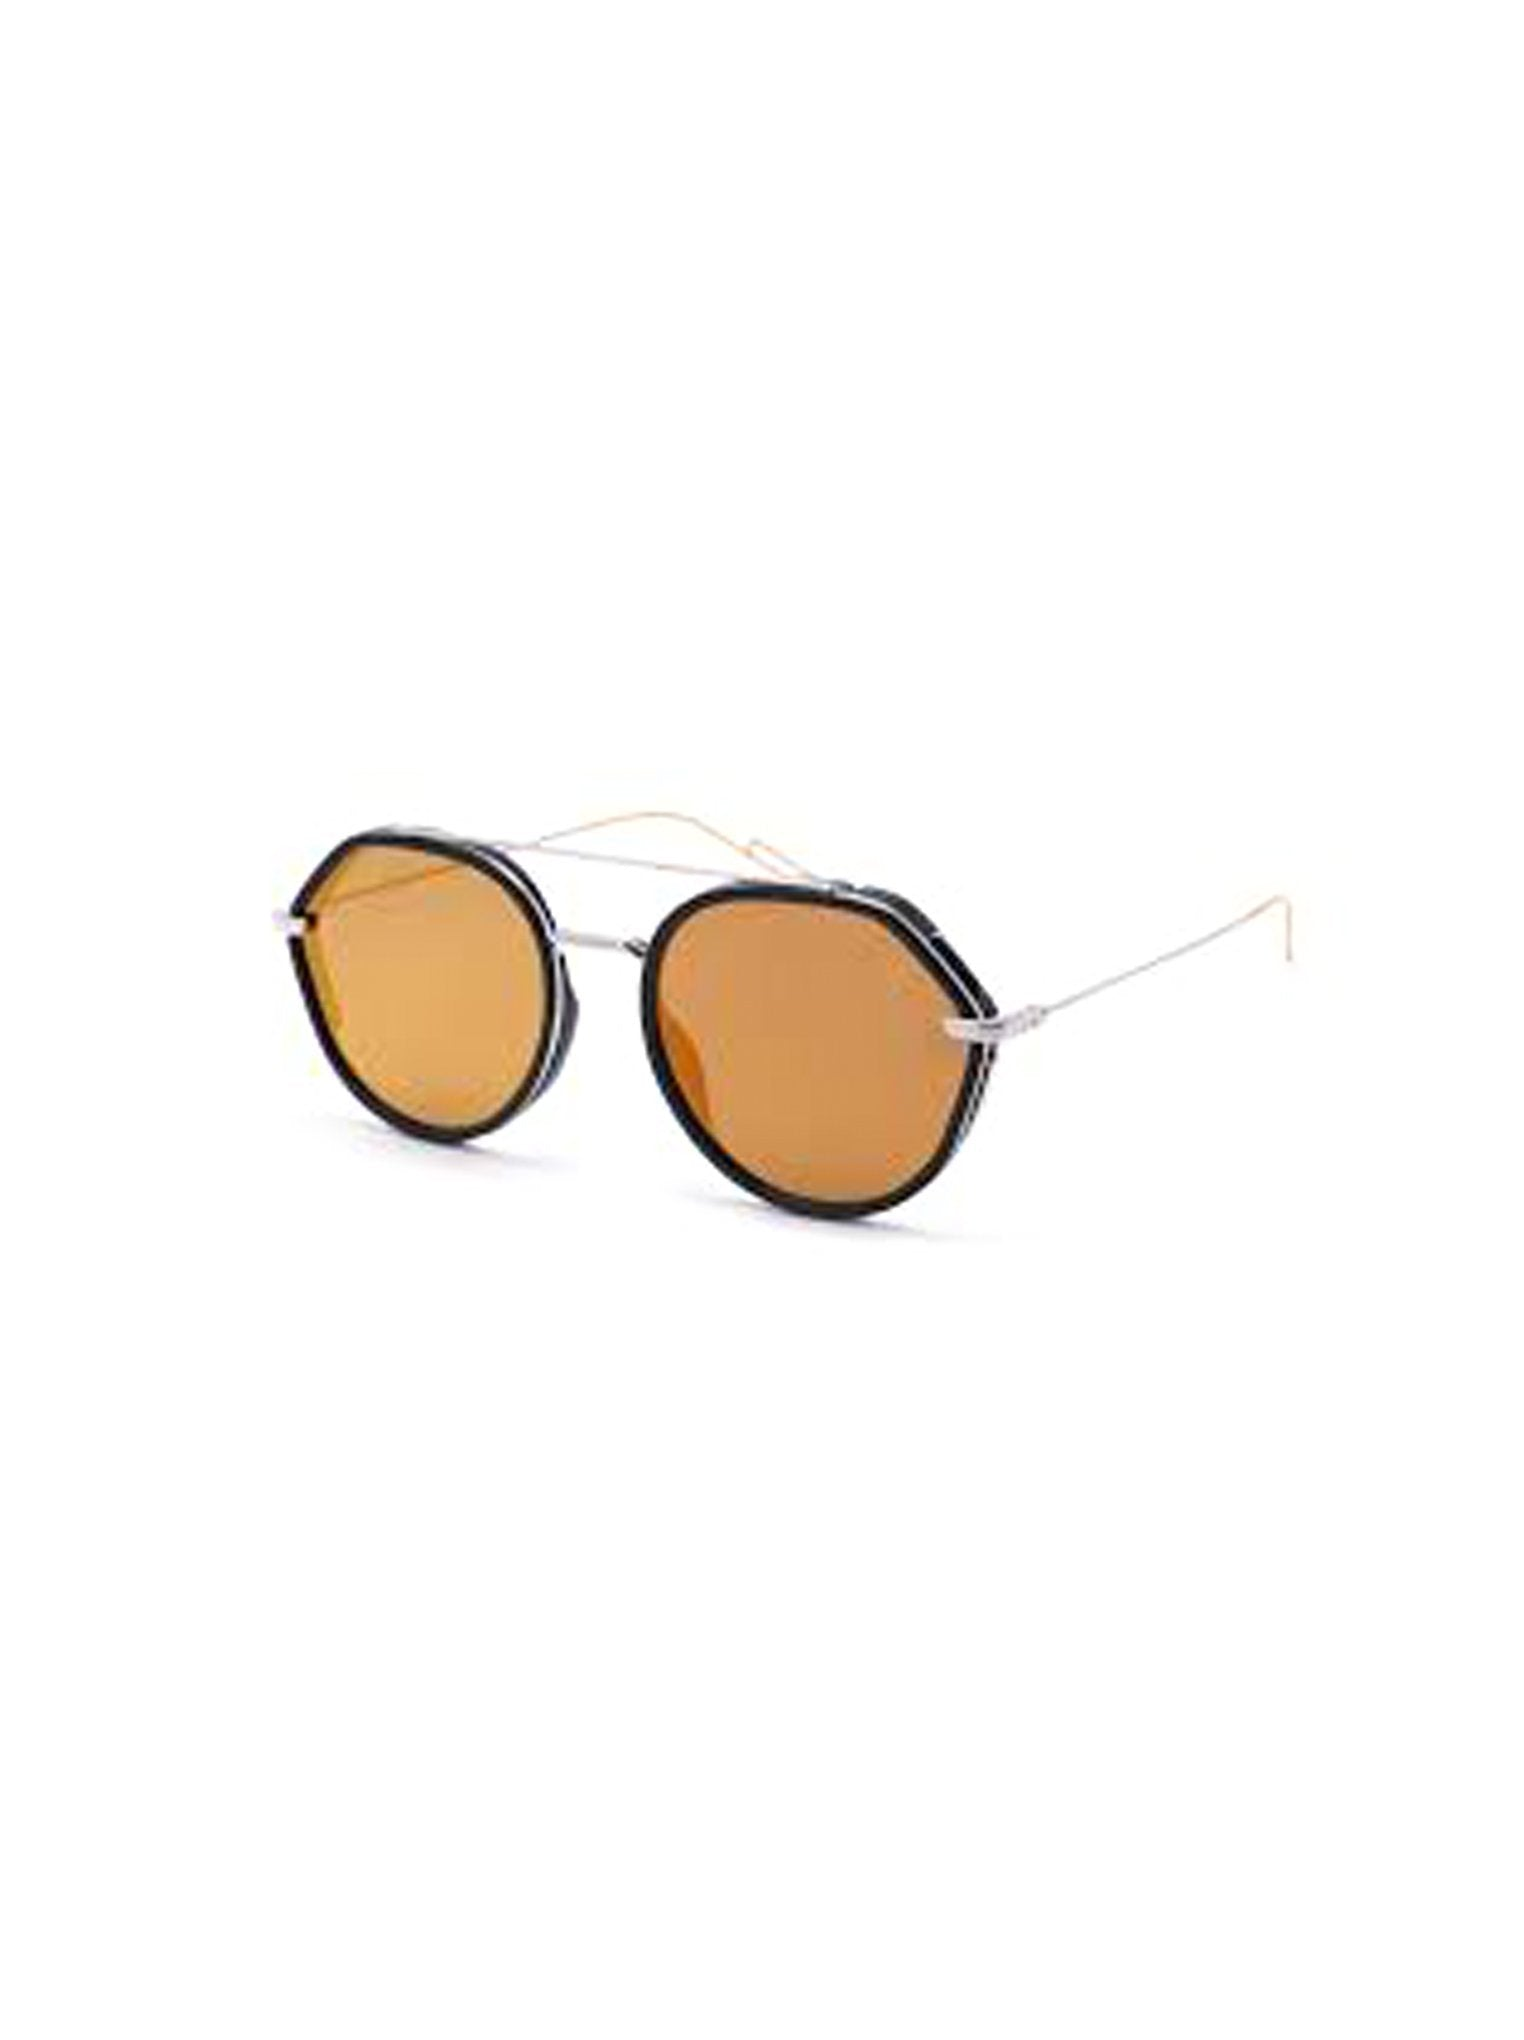 b09d041acce1 Dior - 0219S Round Aviator Sunglasses - Black Palladium   Orange Mirrored -  ForwardModa